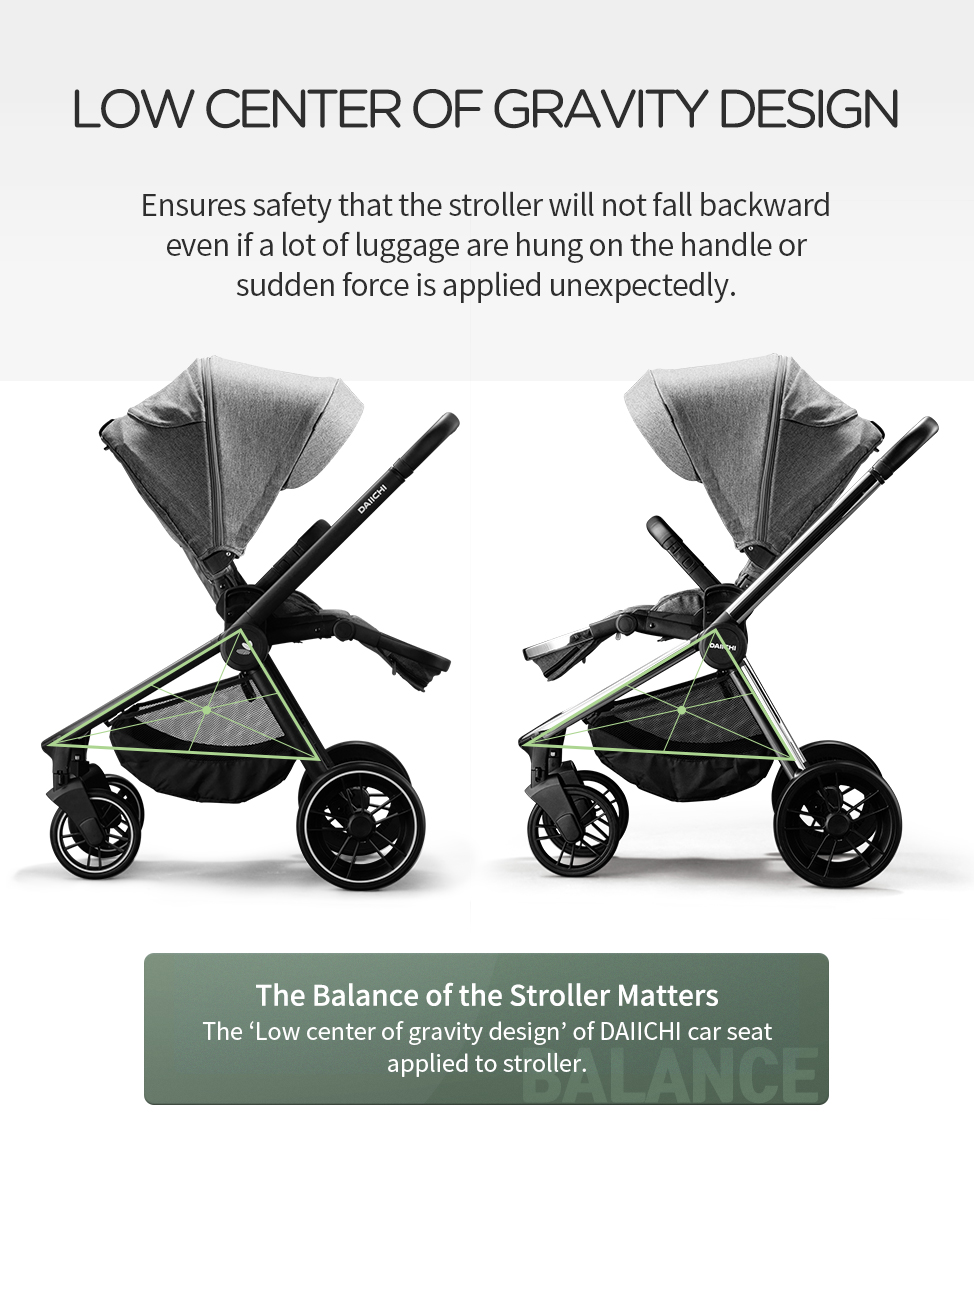 Ensures safety that the stroller will not fall backward even if a lot of luggage are hung on the handle or sudden force is applied unexpectedly.